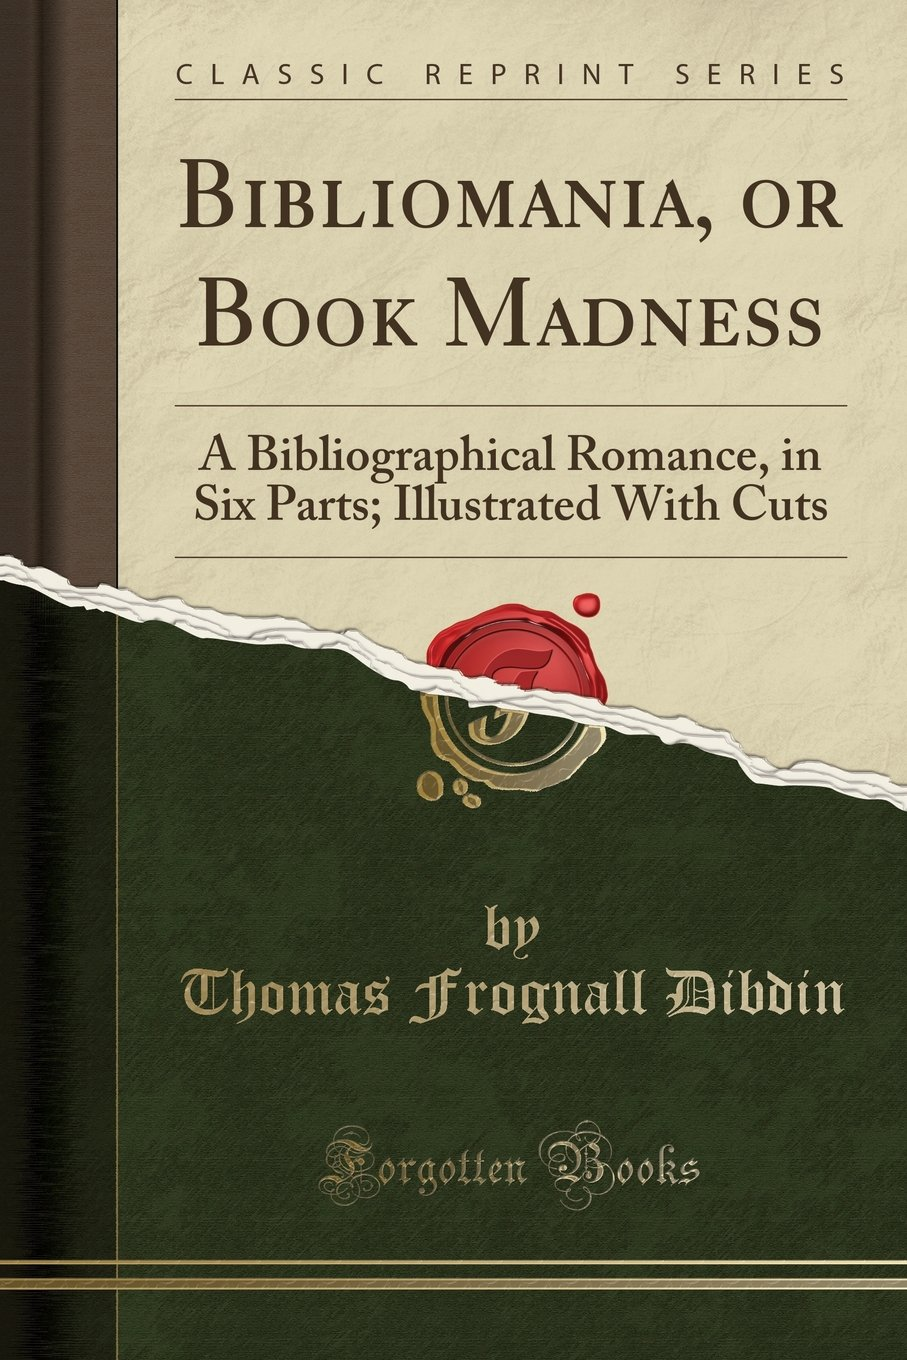 Bibliomania, or Book Madness: A Bibliographical Romance, in Six Parts; Illustrated With Cuts (Classic Reprint) pdf